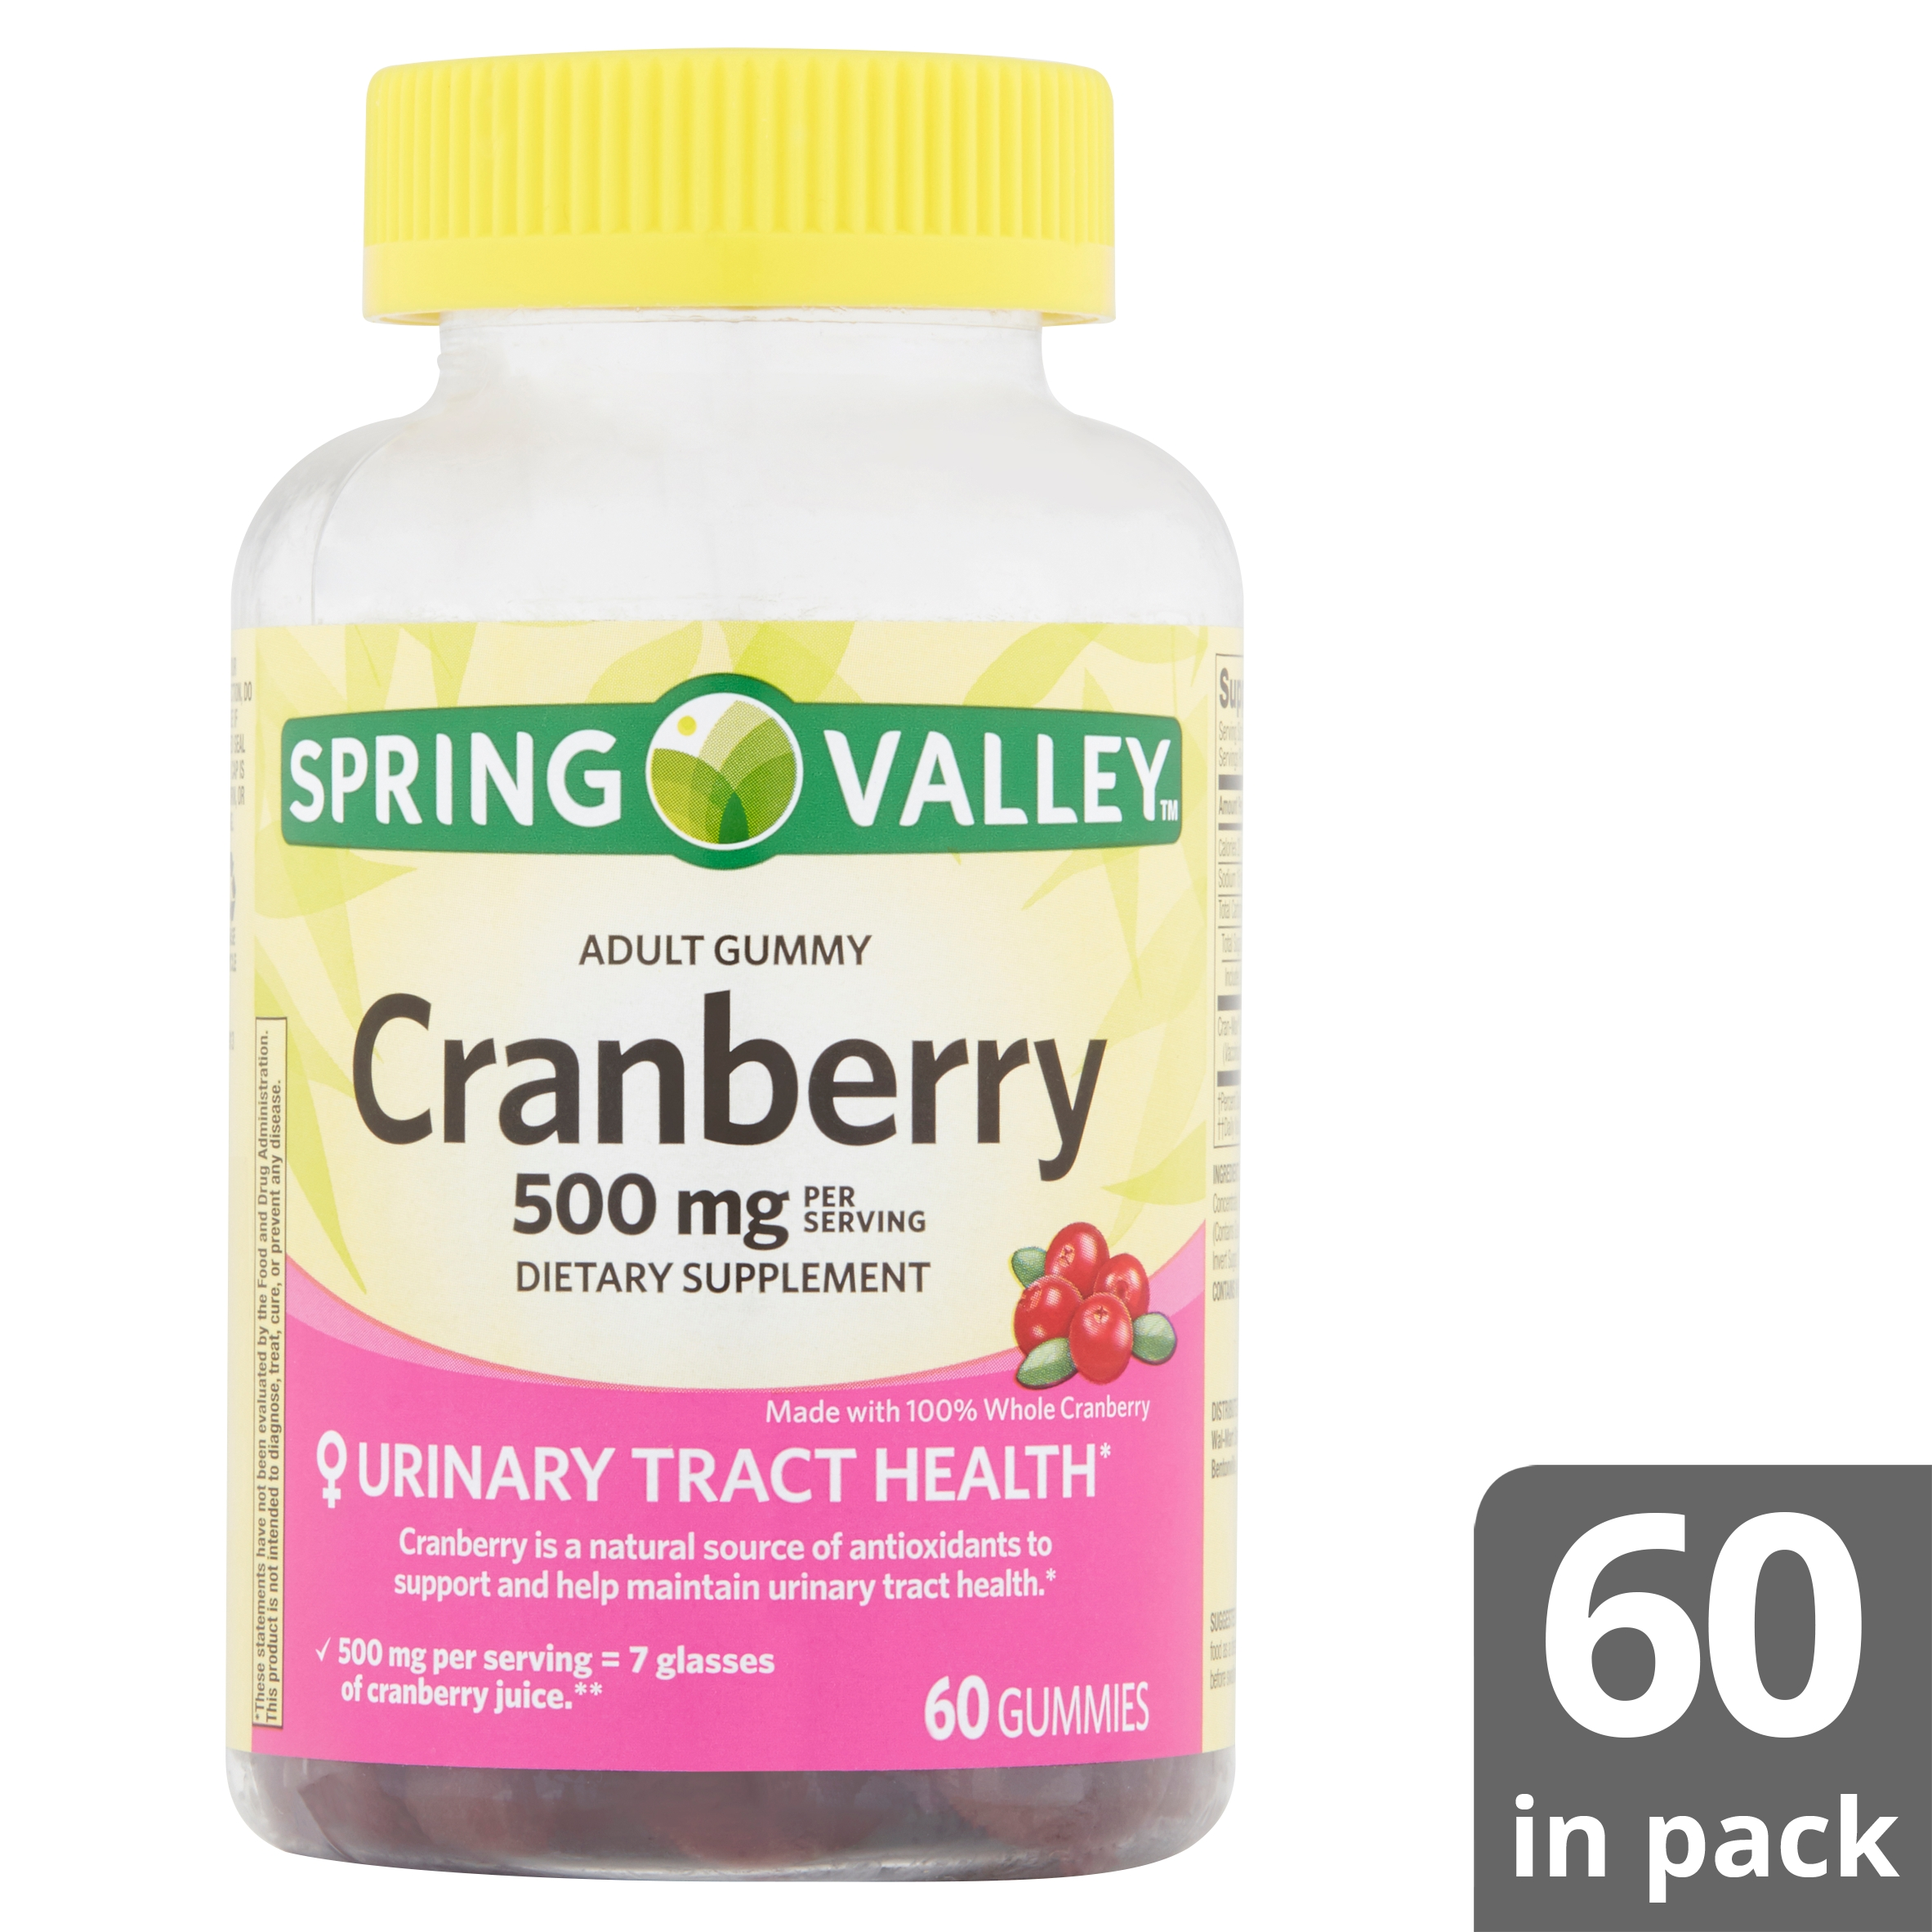 b69a72b5 Spring Valley Cranberry Adult Gummies, 500 mg, 60 count - Walmart.com